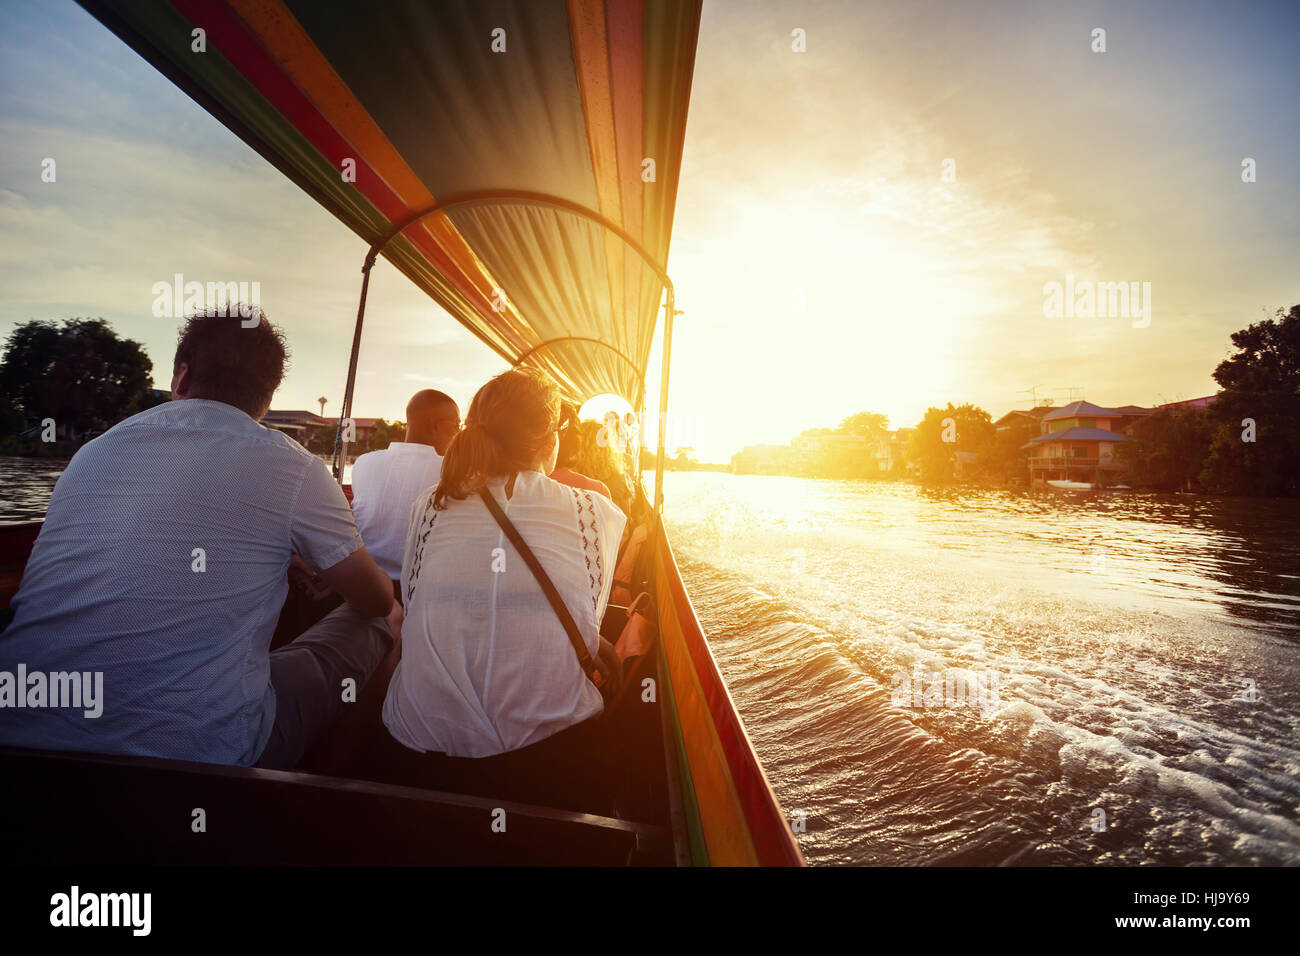 Tourist sitting in long-tail boat cruise by Chao Phraya river in Ancient city Ayutthaya at Sunset, Thailand - Stock Image